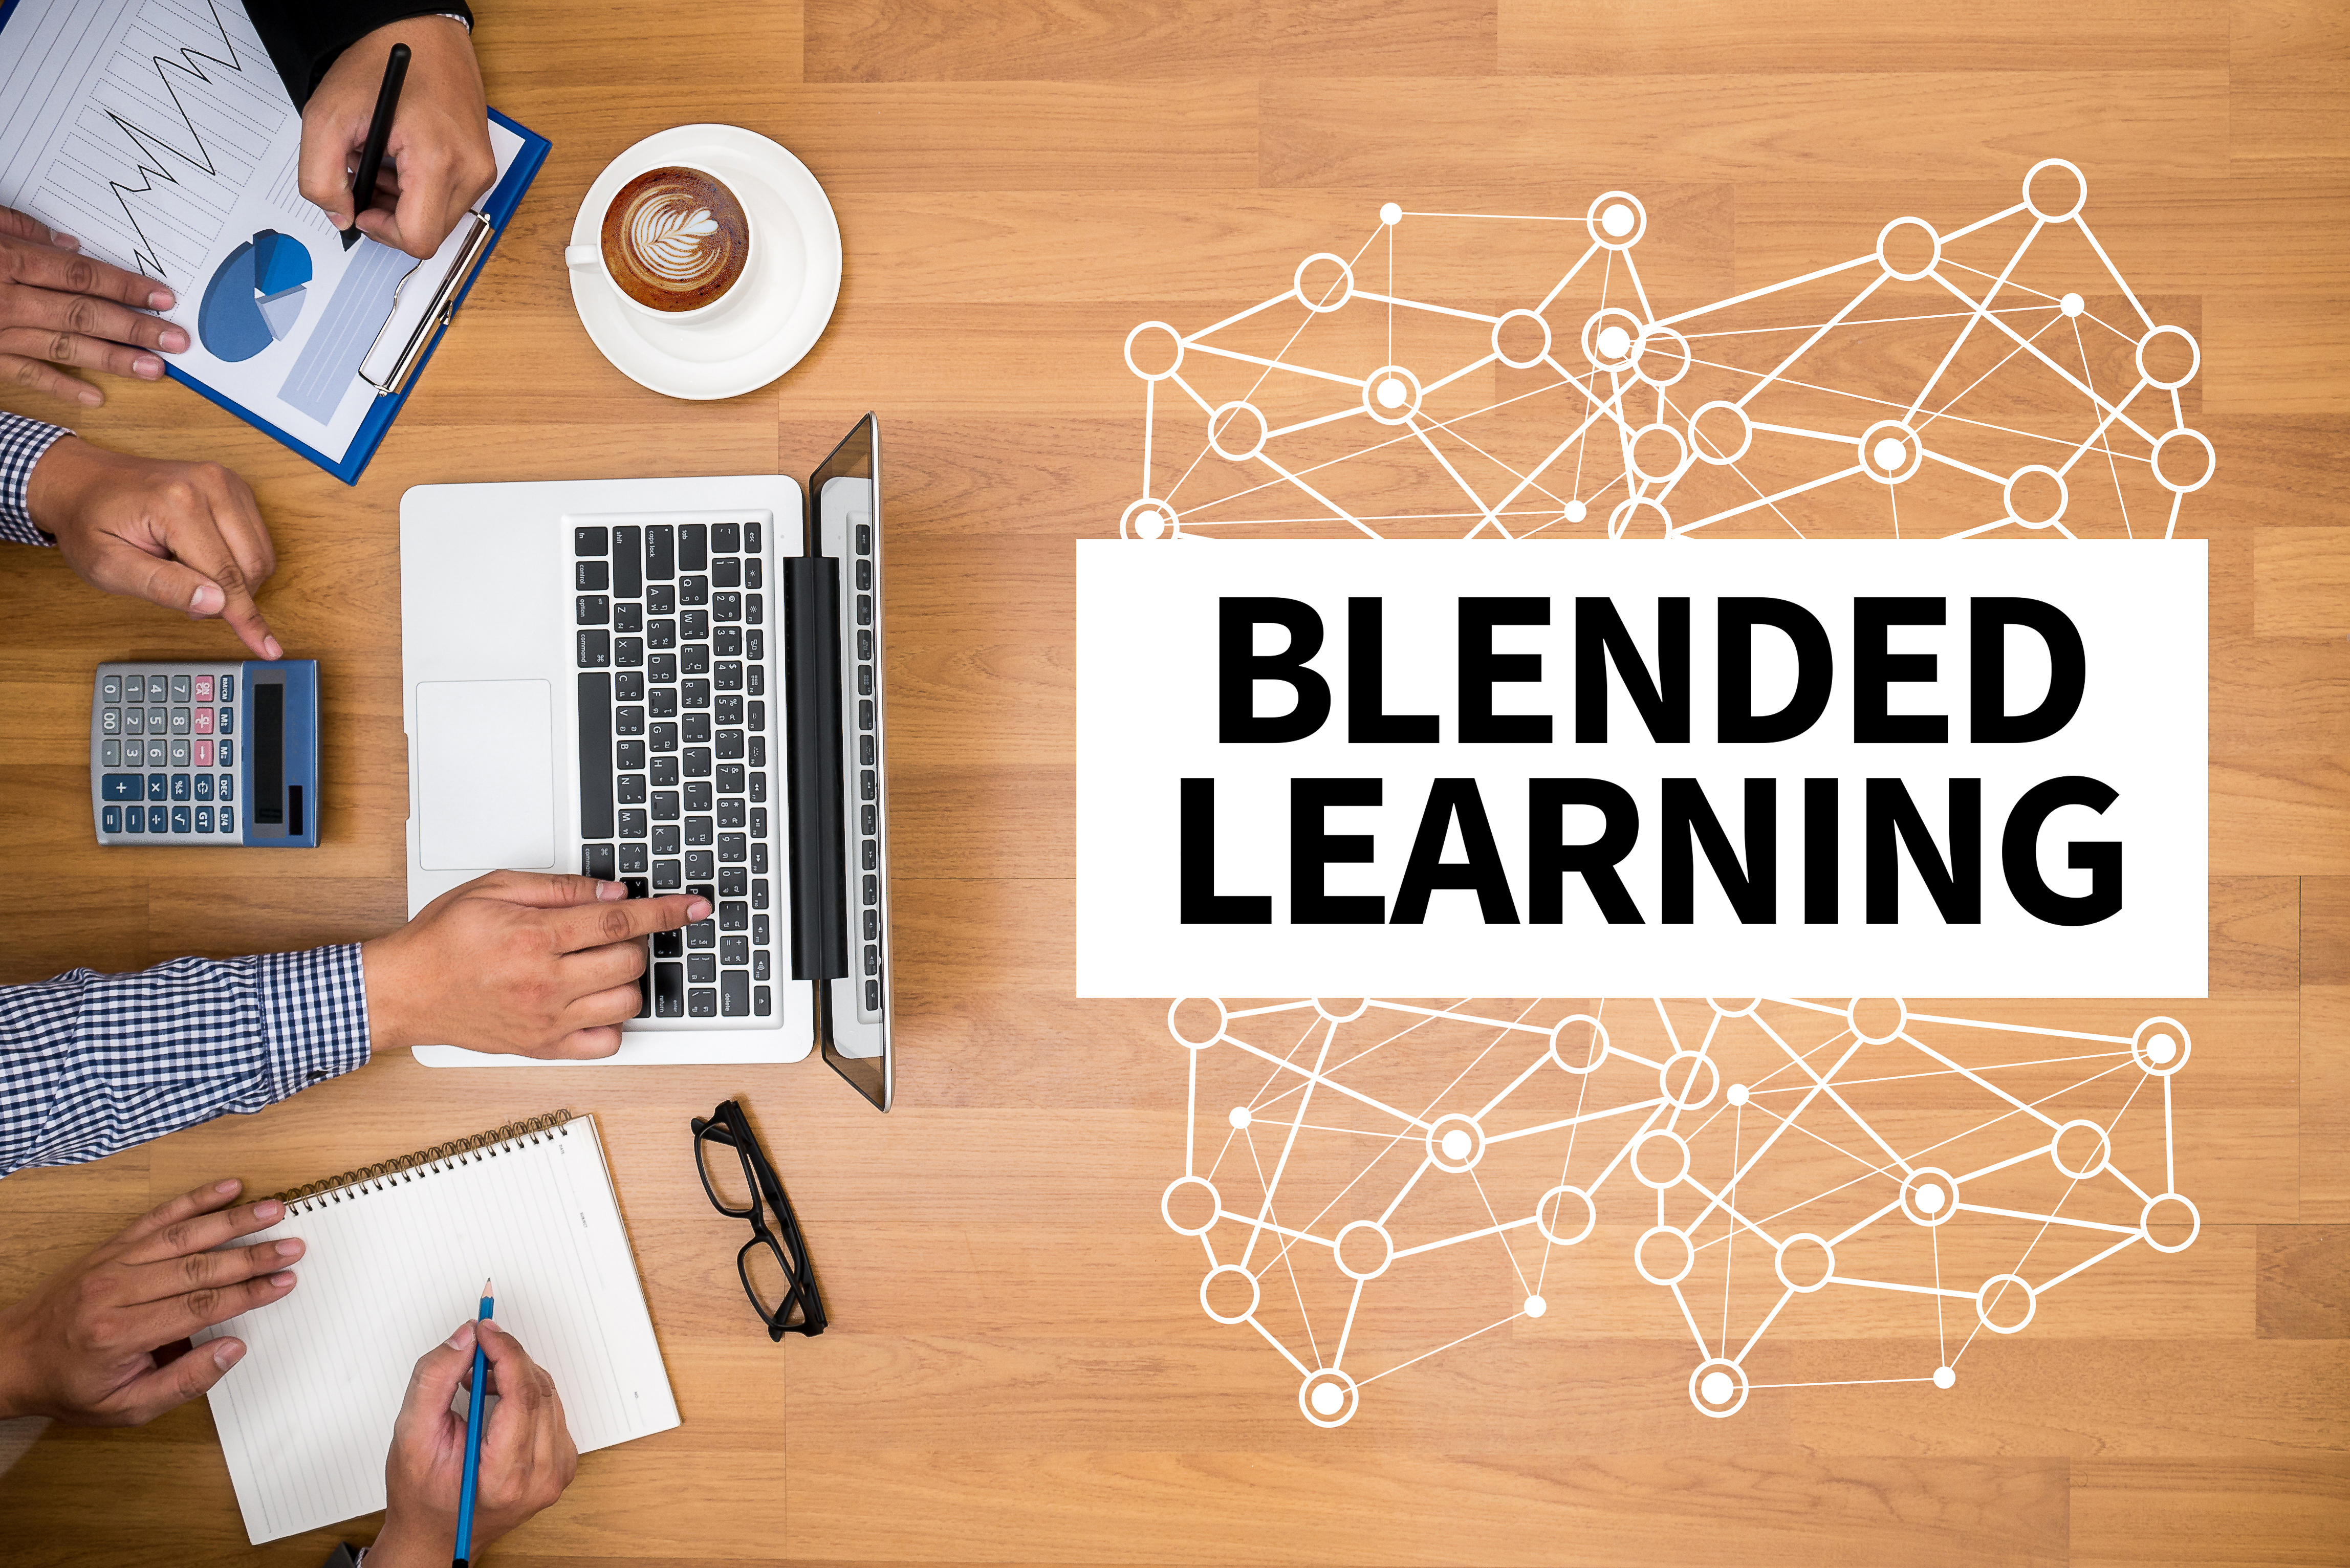 BLENDED LEARNING Business team hands at